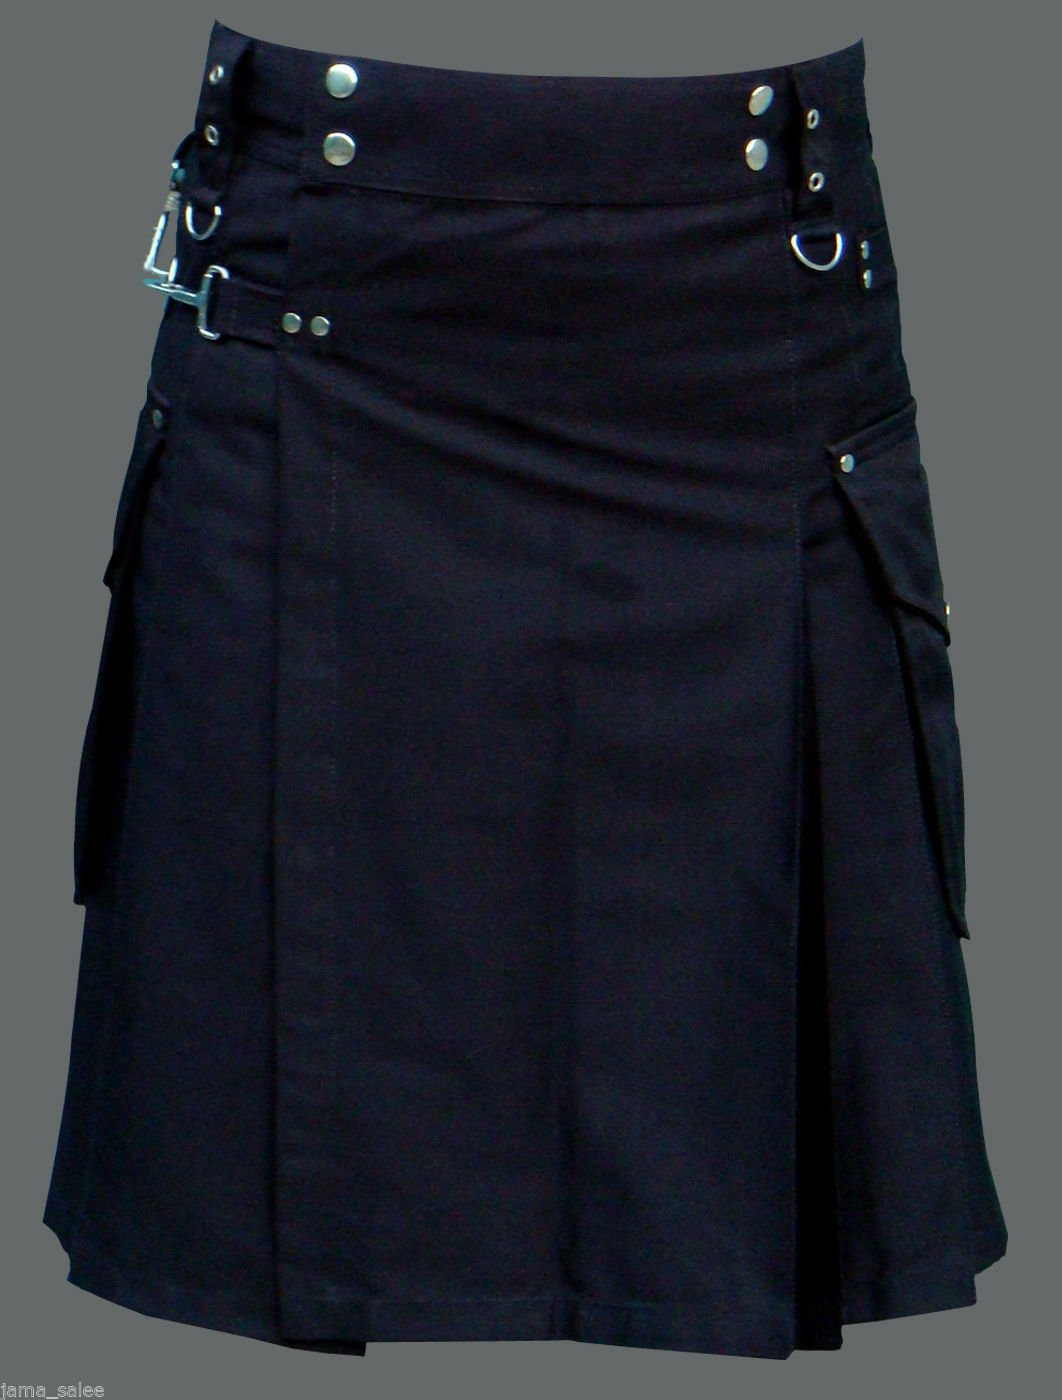 Men 32 Waist Handmade Black Deluxe Utility Kilt 100% Cotton With Cargo Pockets